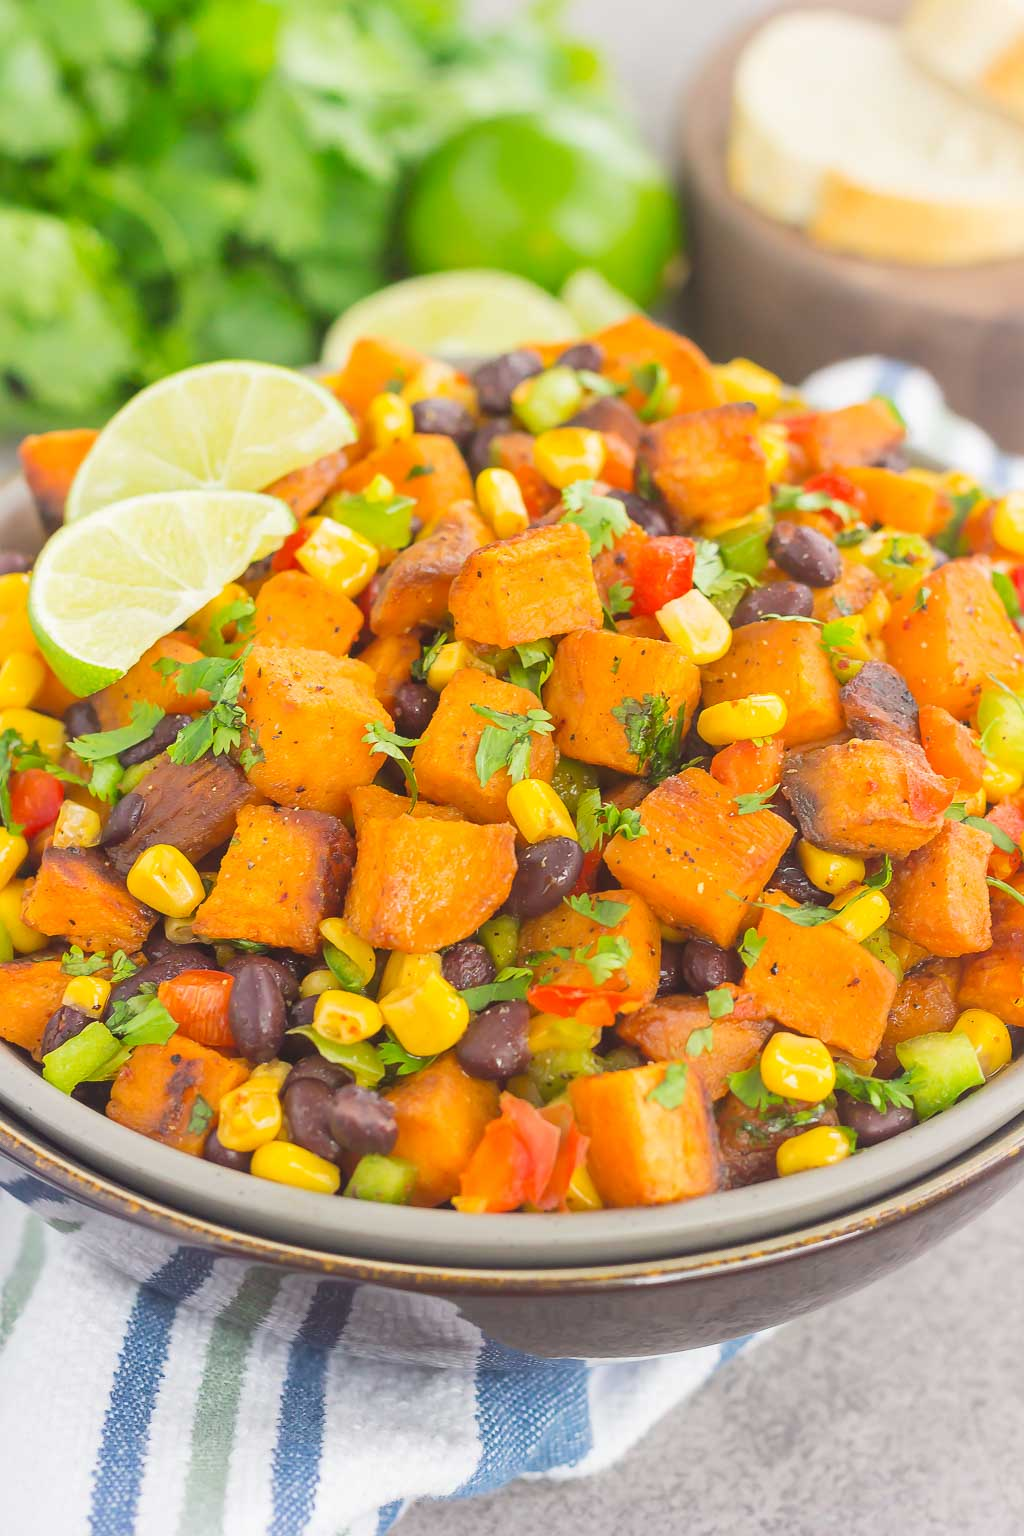 sweet potato potato salad garnished with cilantro and lime wedges